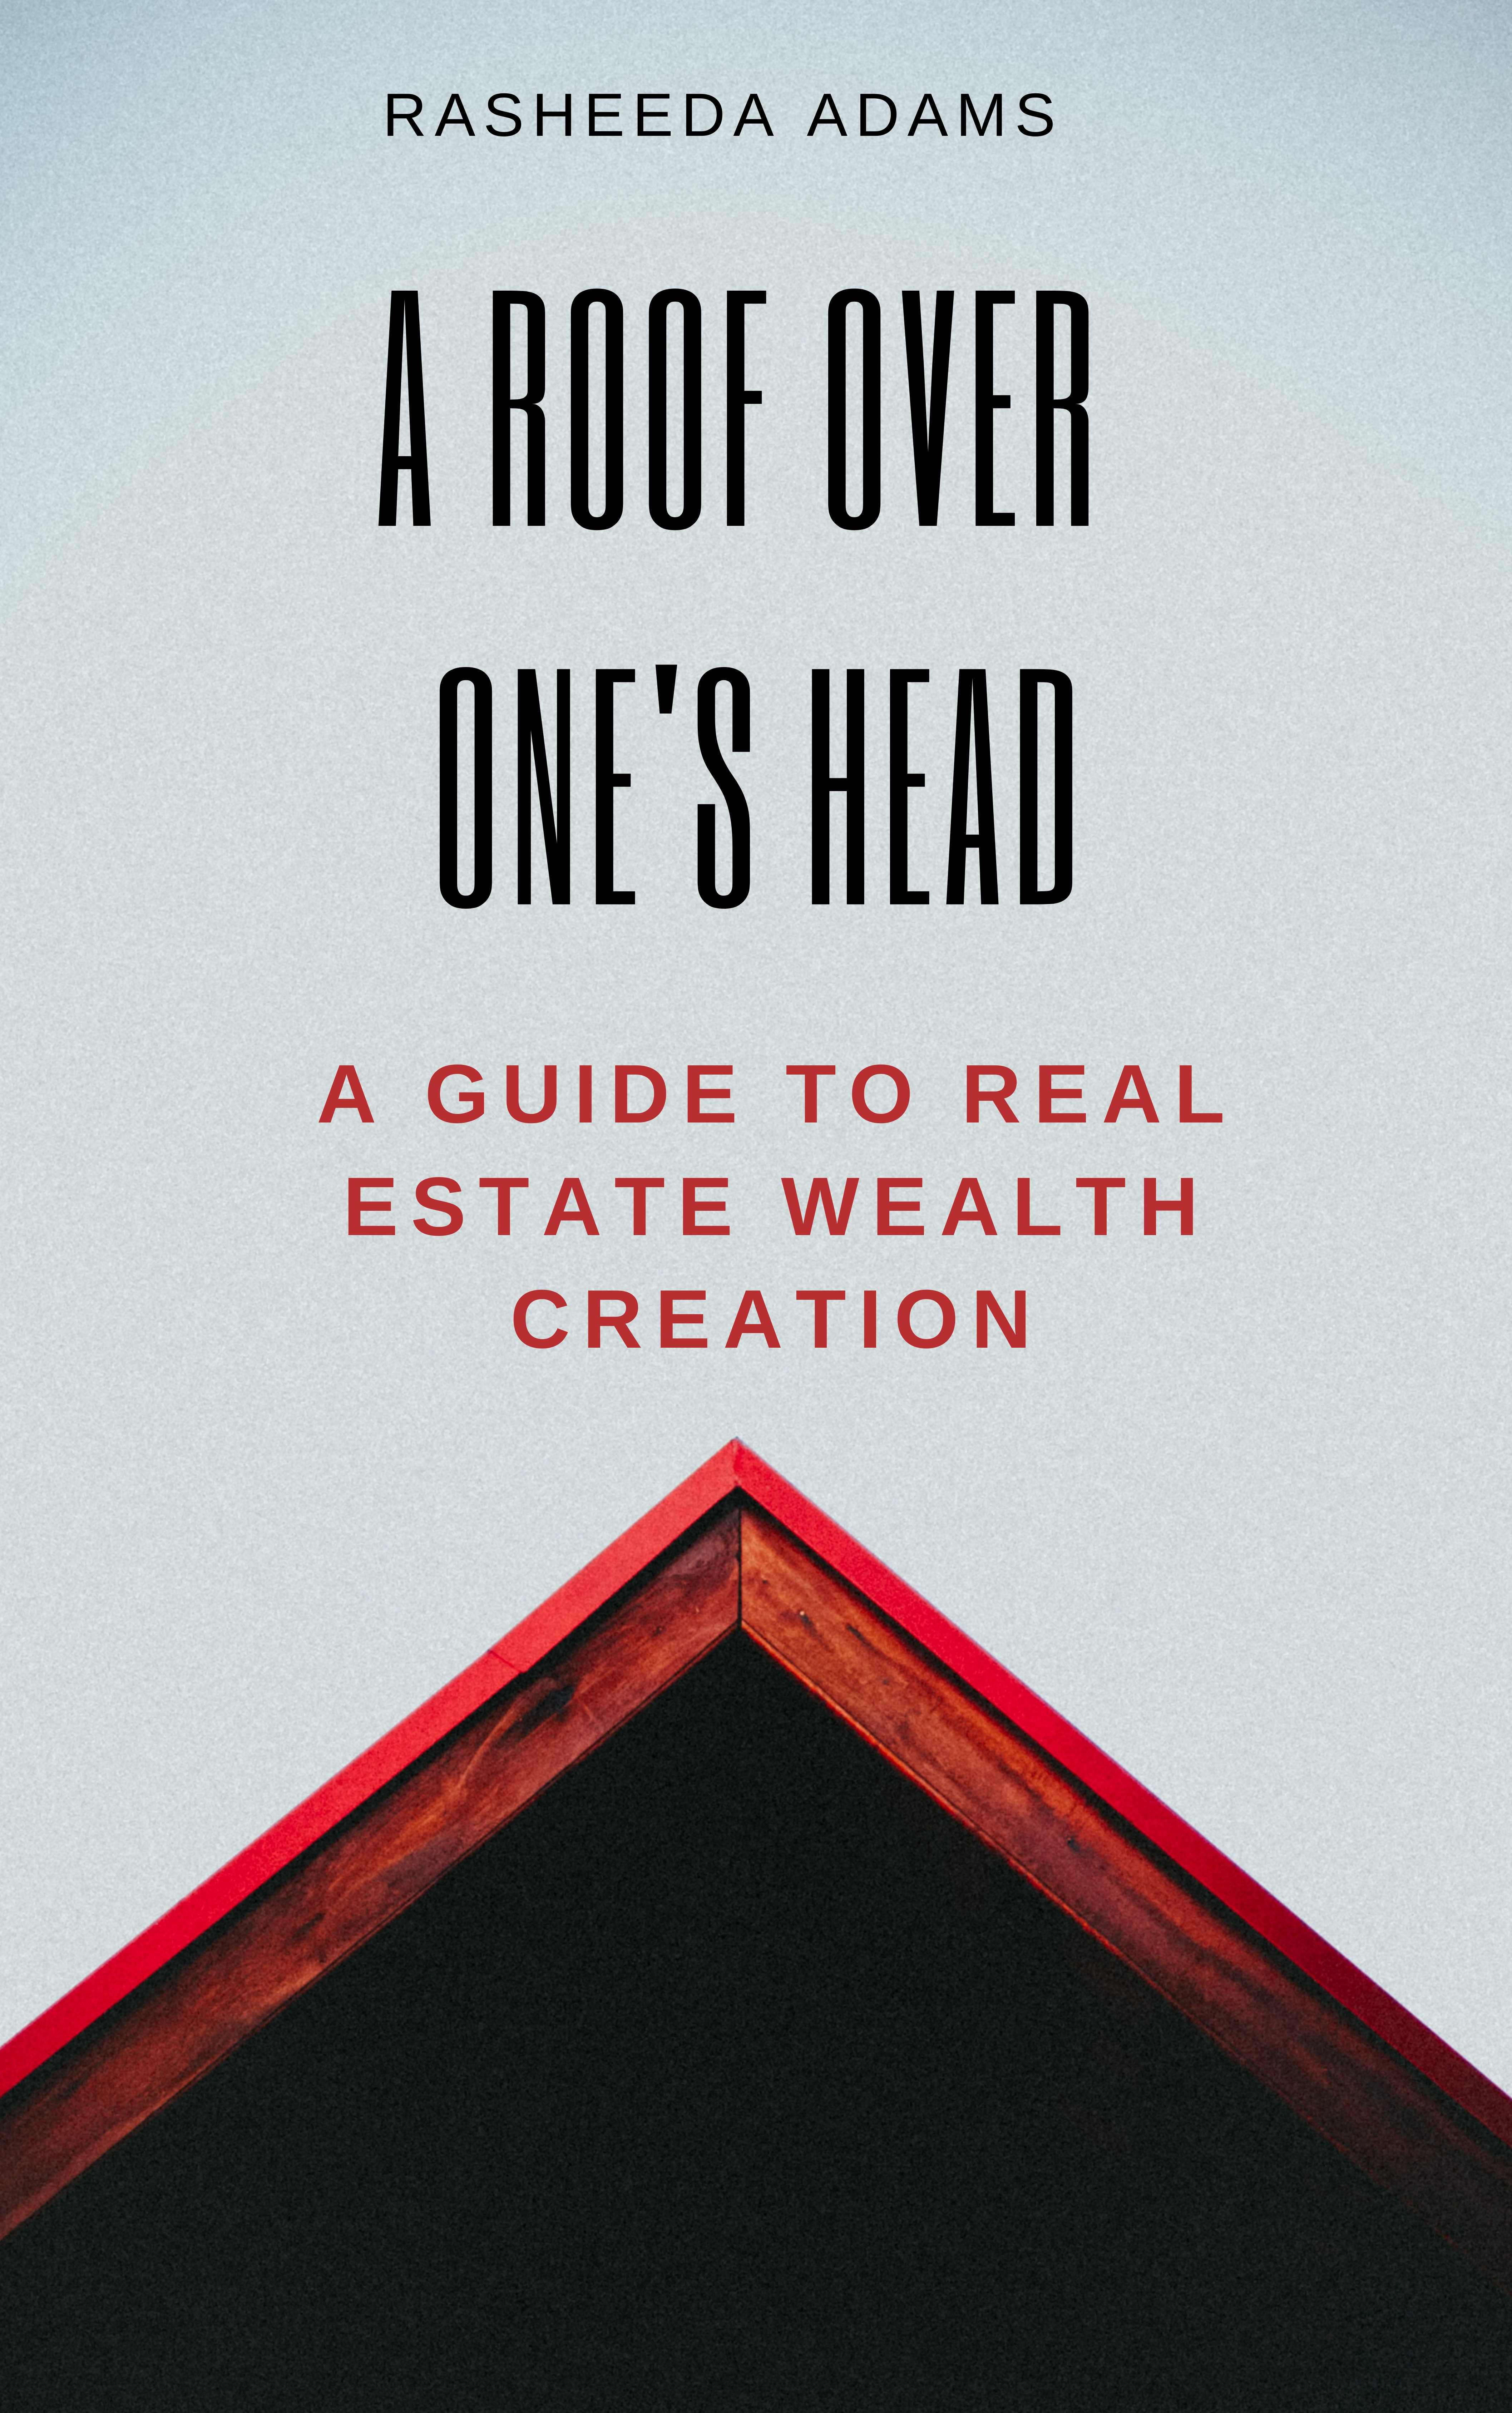 A ROOF OVER ONE'S HEAD